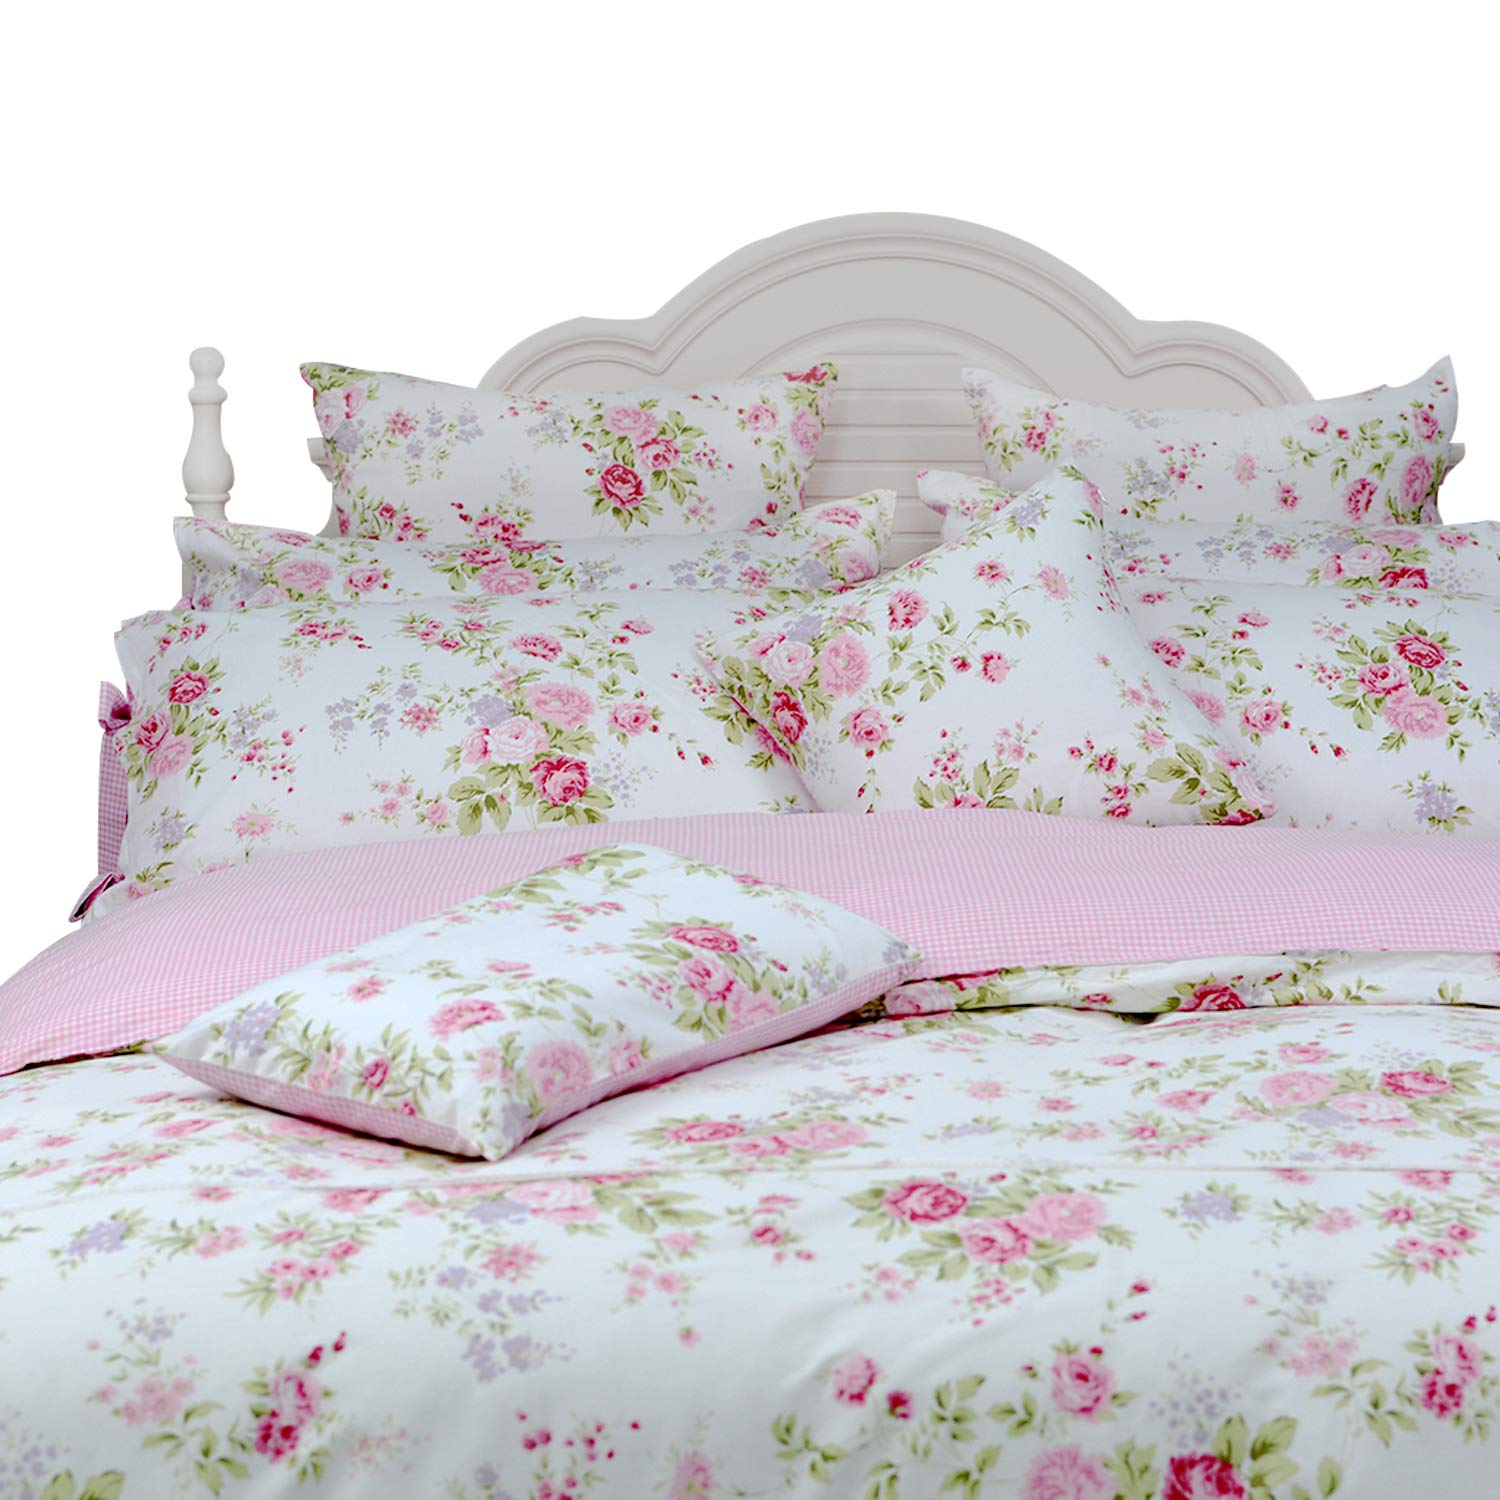 FADFAY Rose Floral Duvet Cover Set Pink Grid Cotton Girls Bedding with Hidden Zipper Closure 3 Pieces, 1duvet Cover & 2pillowcases,Twin Size